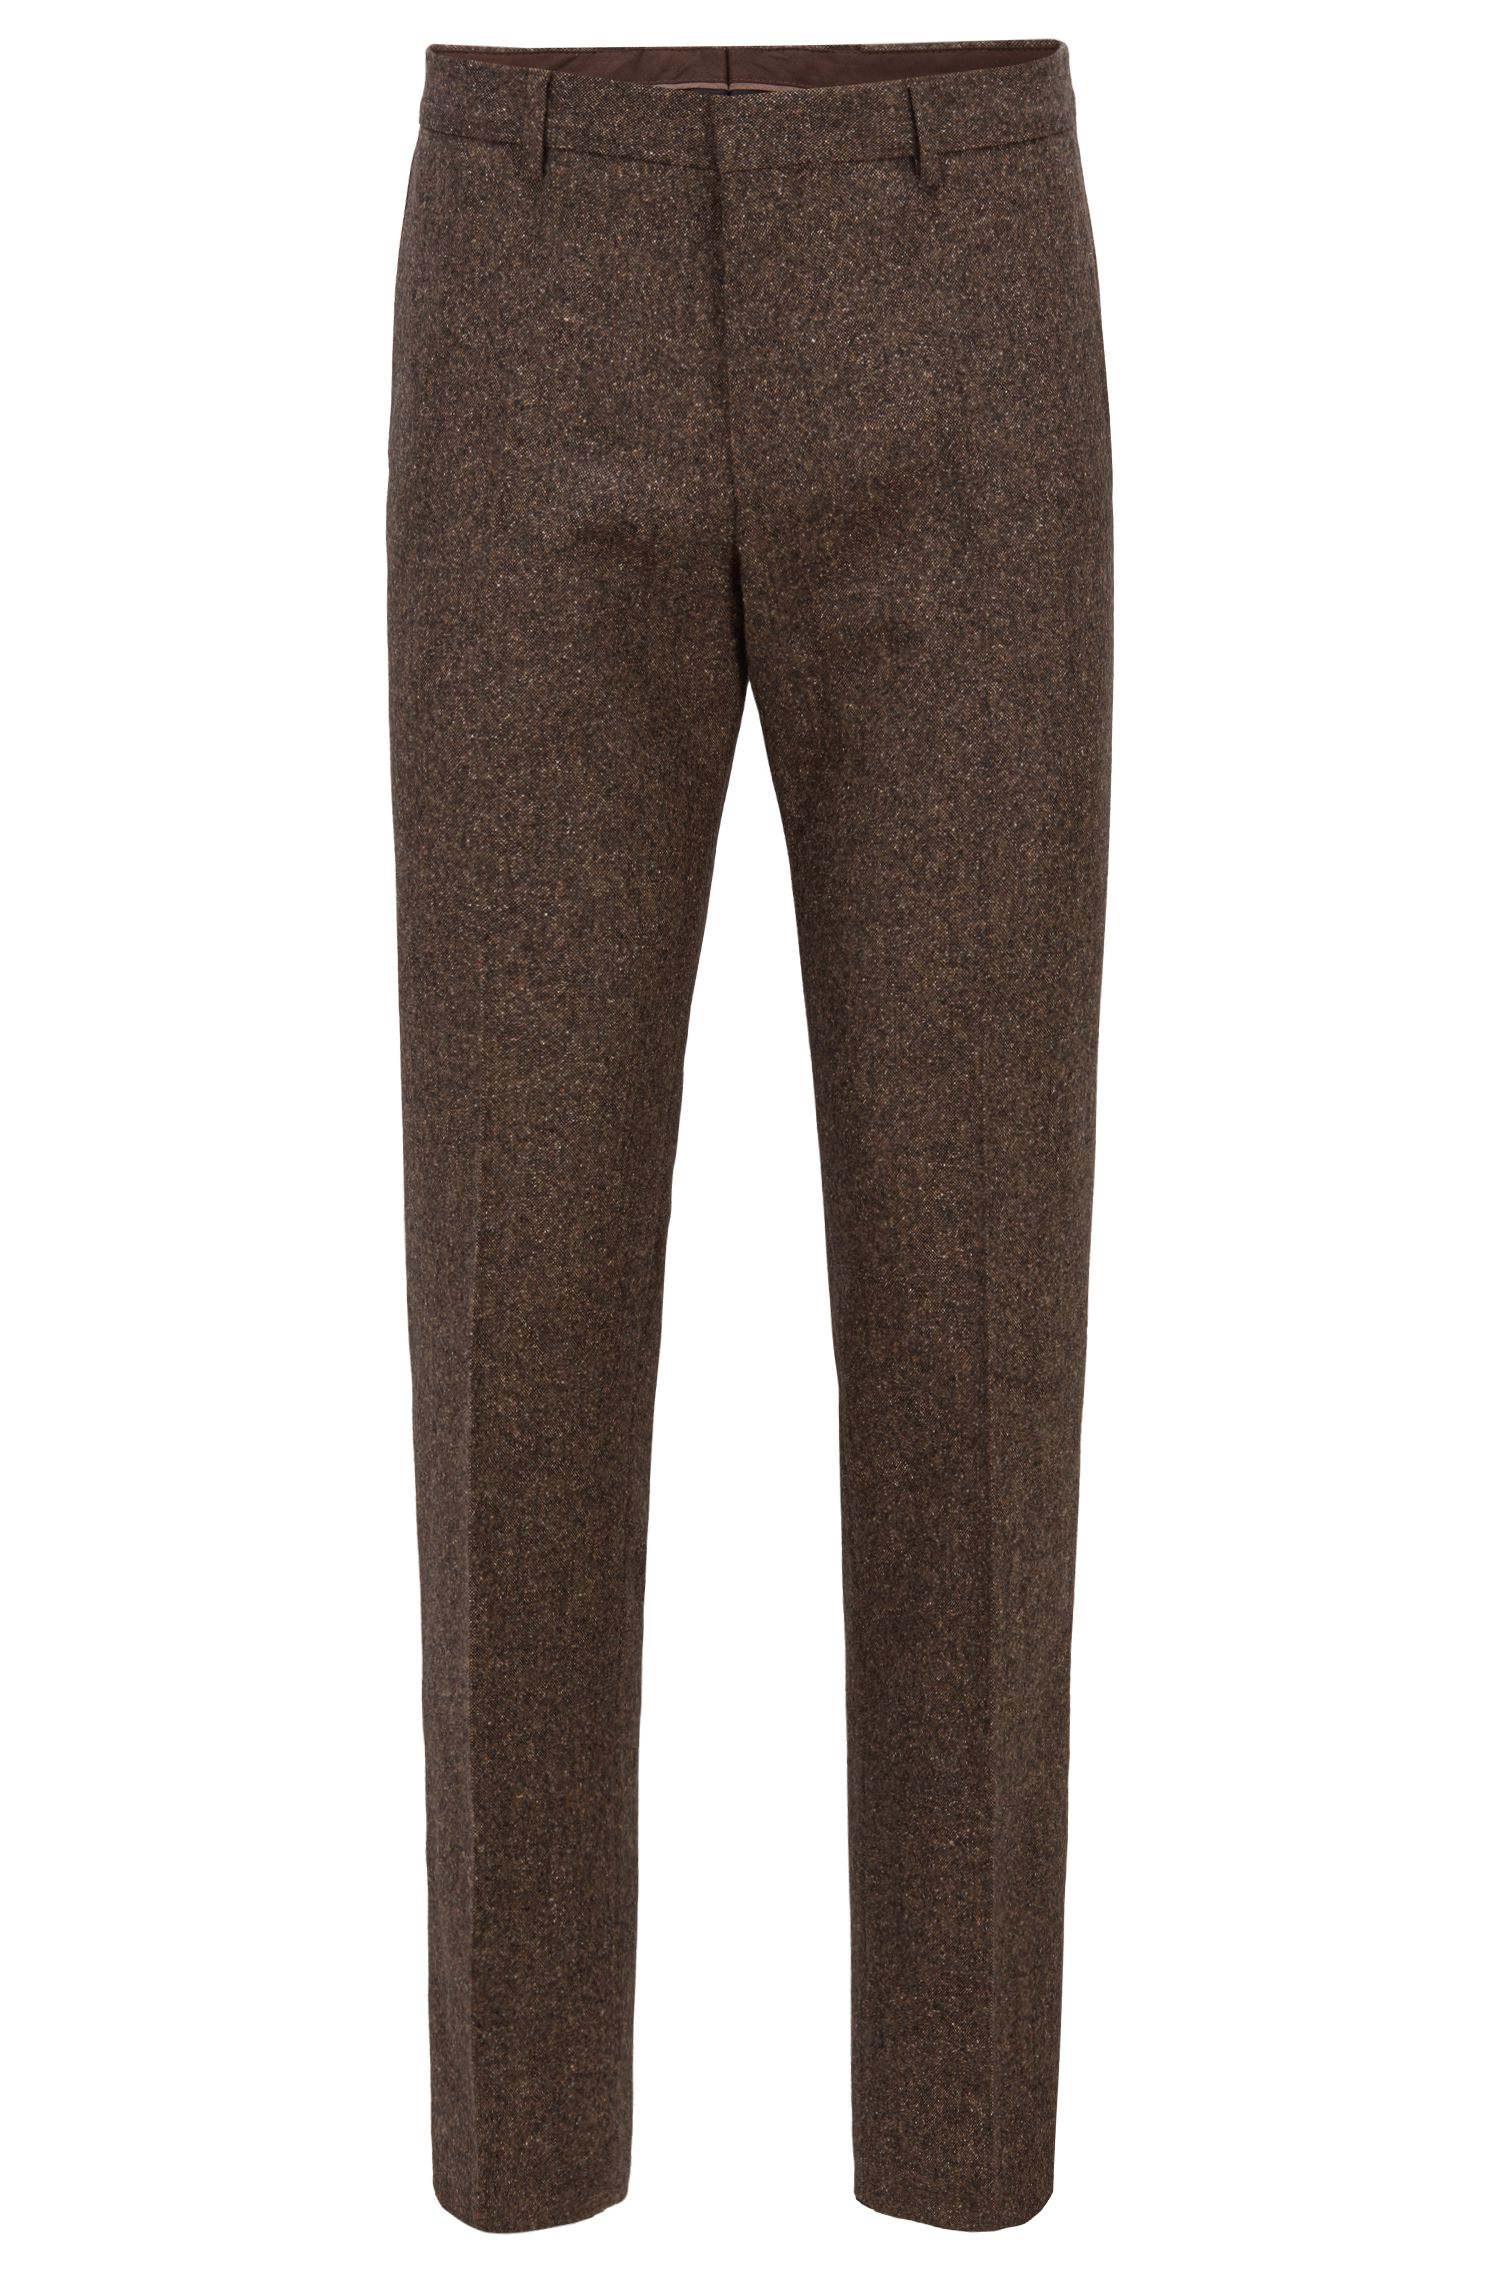 Pantalones slim fit de tweed en mezcla de lana virgen, Marrón claro